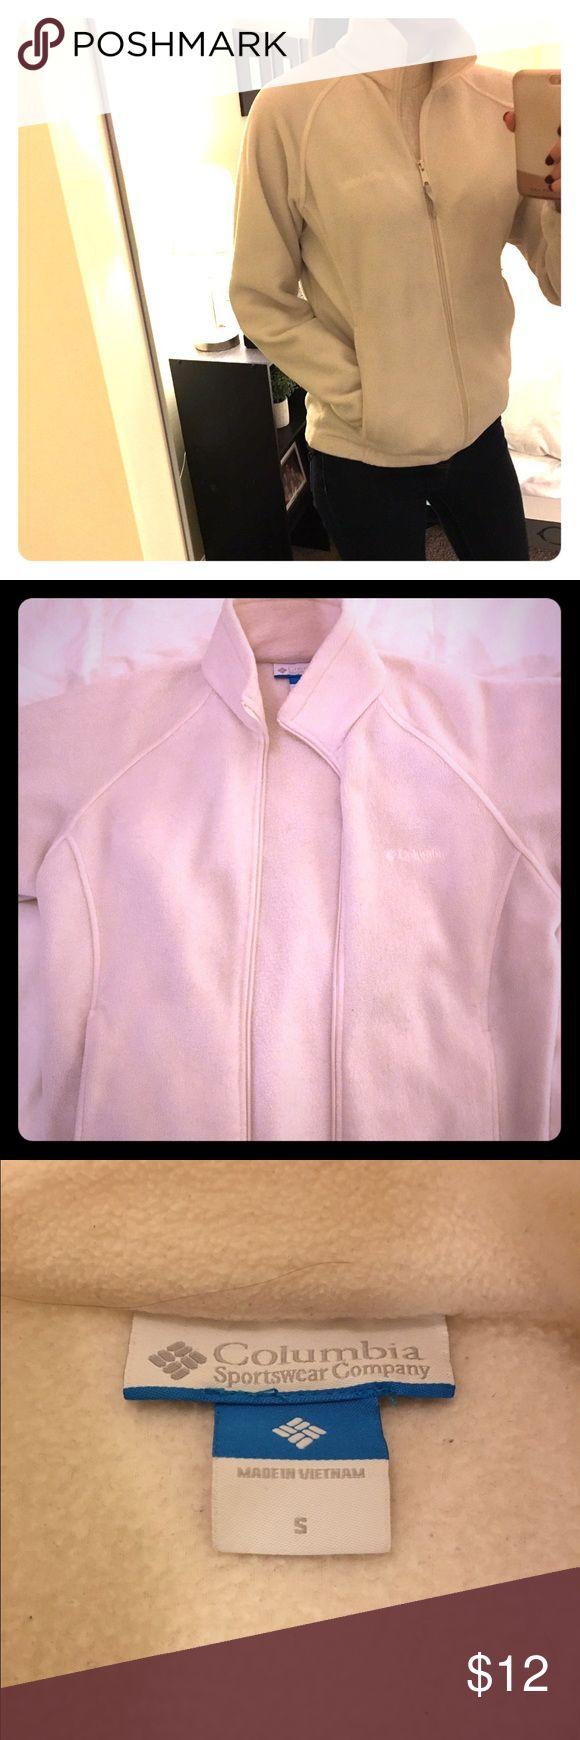 Colombia Fleece Jacket This off white Columbia fleece is super comfy and casual. Fits great! Columbia Jackets & Coats Utility Jackets